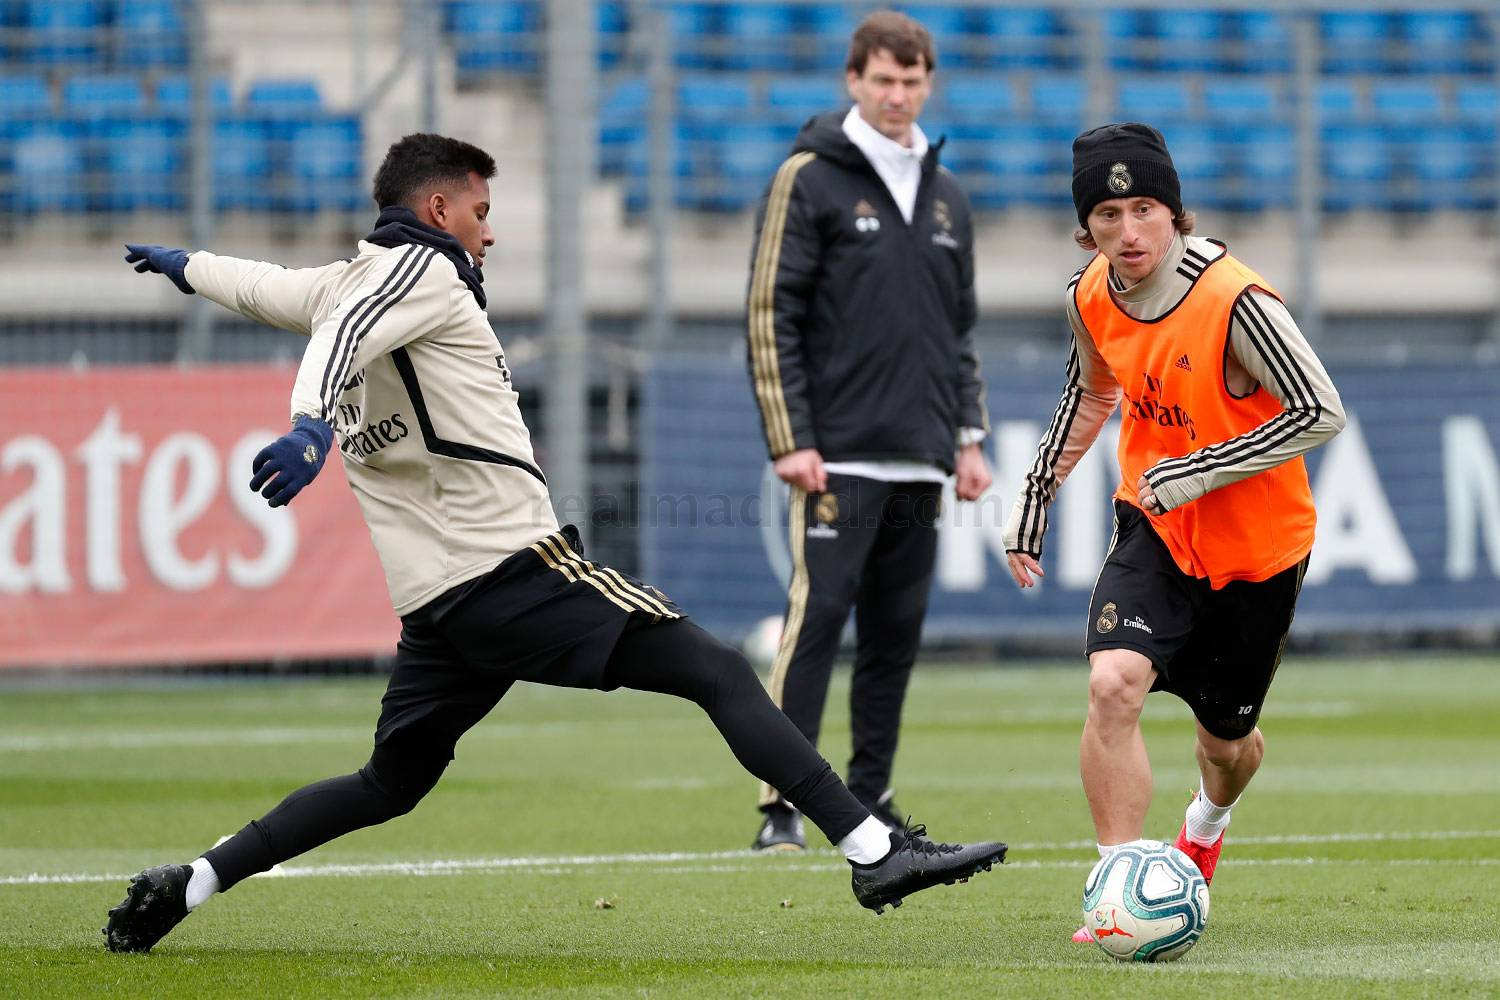 Real Madrid - Entrenamiento del Real Madrid  - 05-03-2020